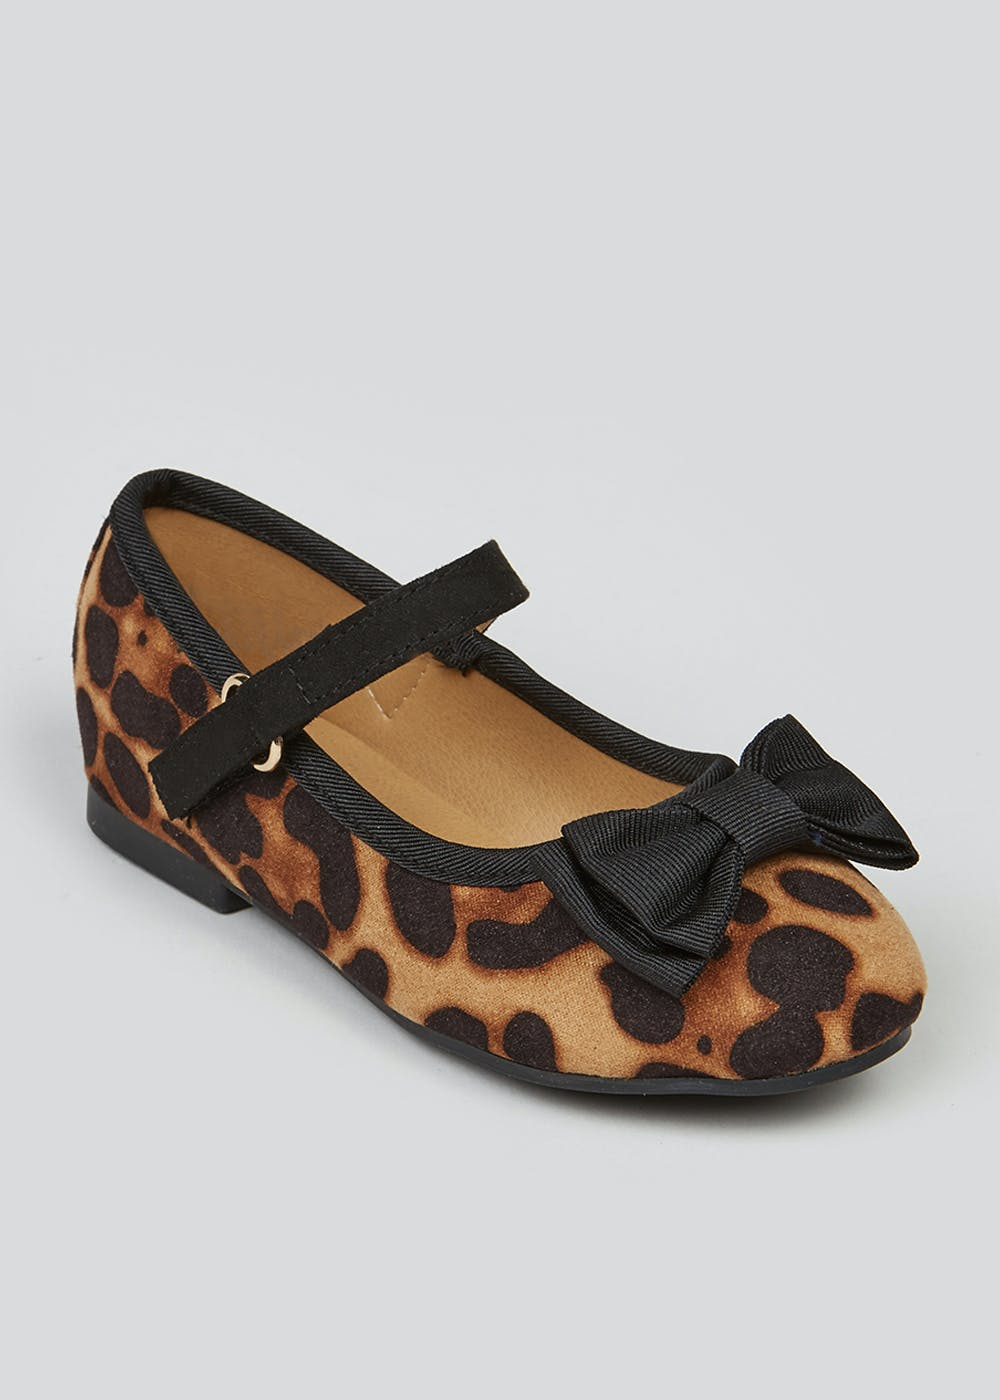 Girls Leopard Print Ballet Shoes (Younger 4-12) – Brown